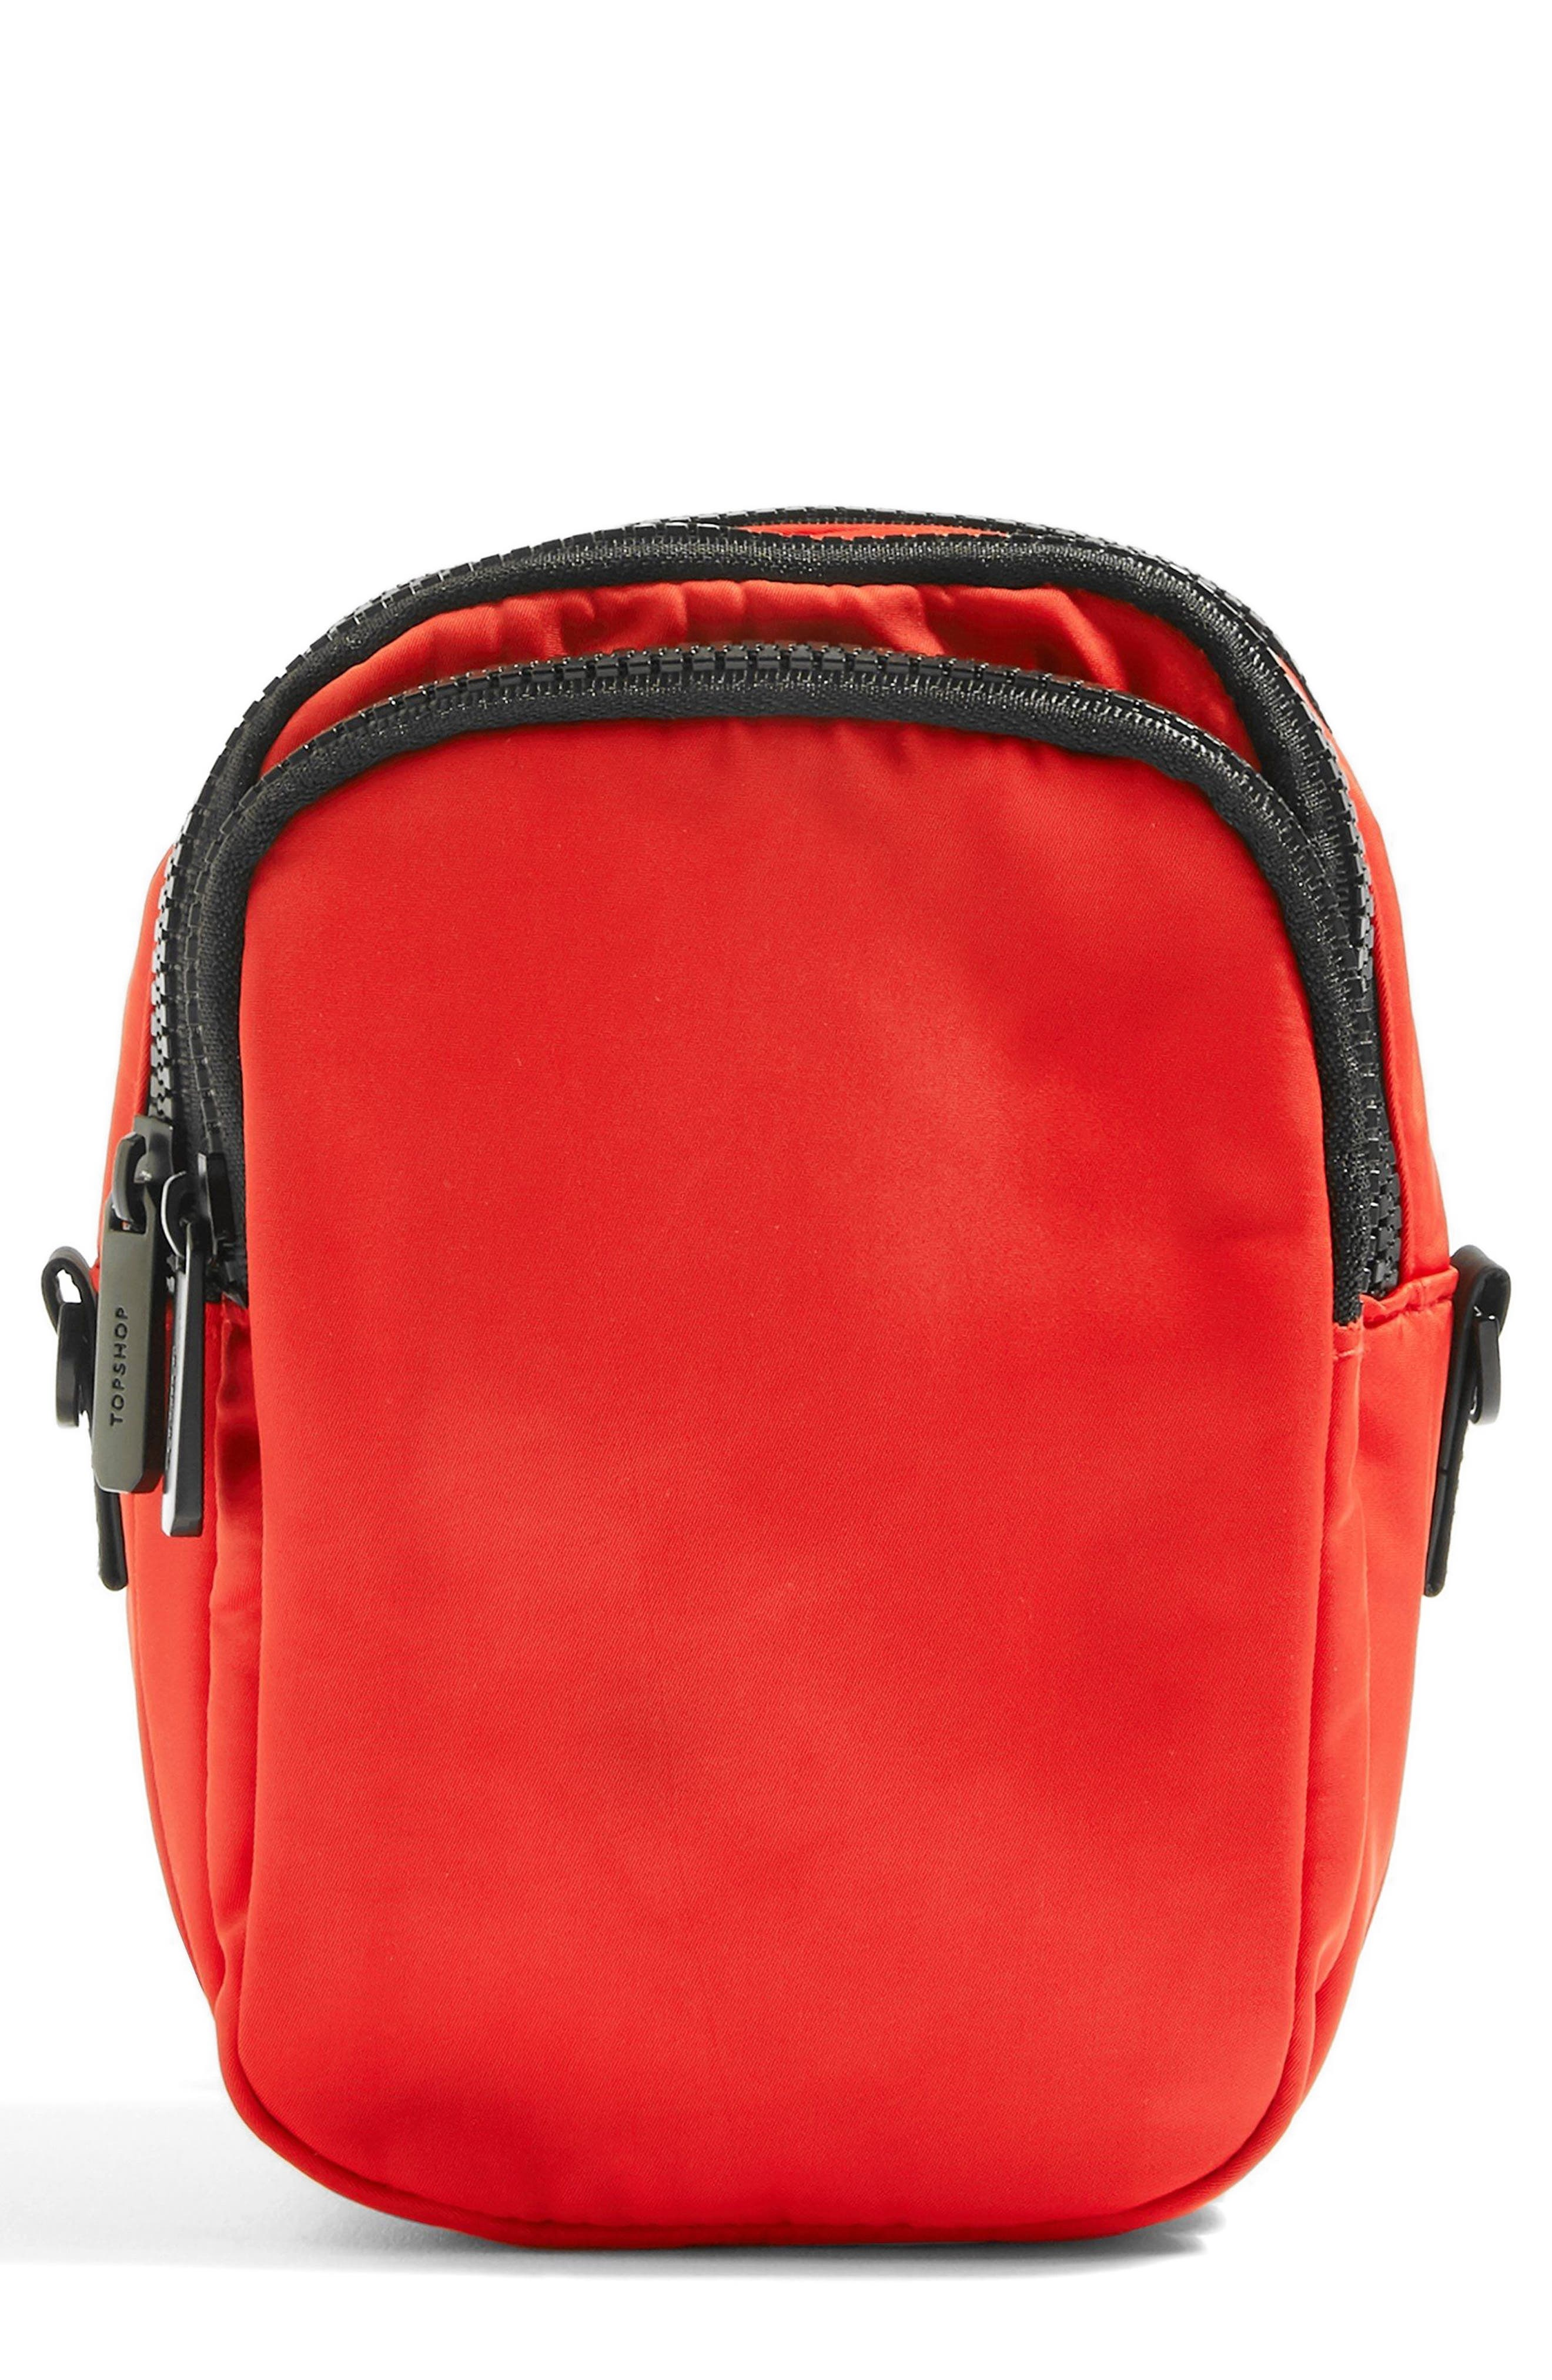 Storm Nylon Pouch,                             Main thumbnail 1, color,                             Red